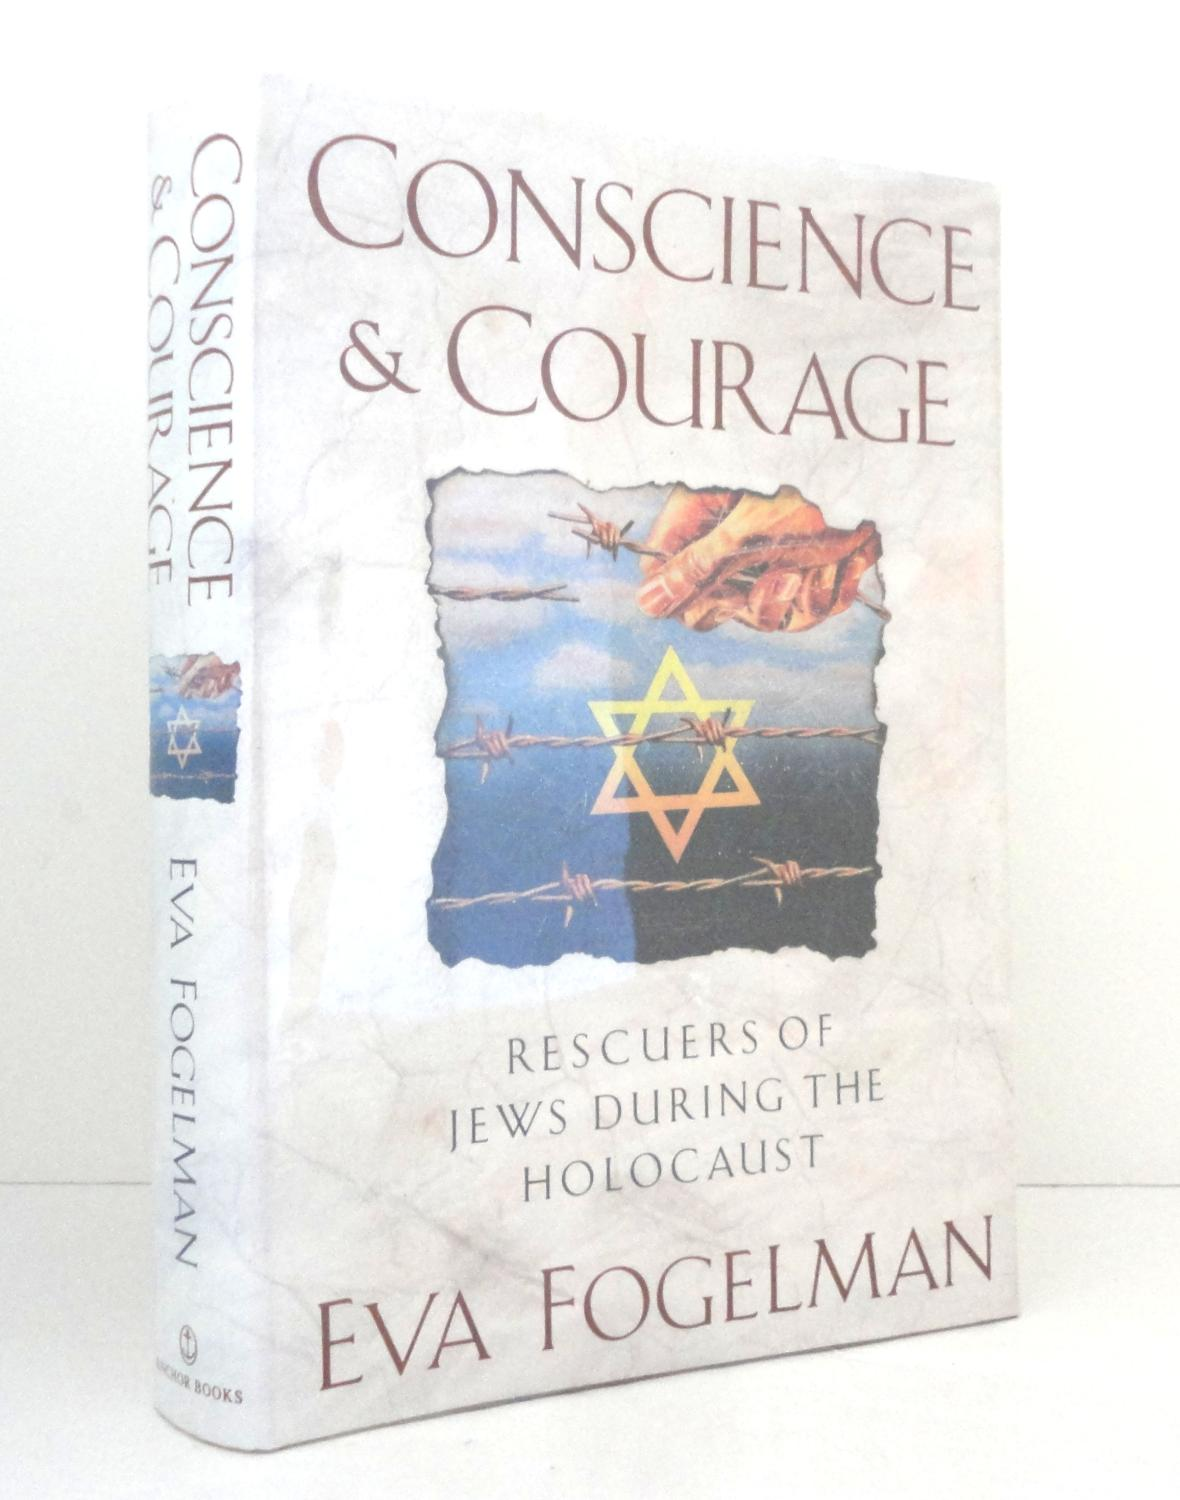 Conscience & Courage: Rescuers of Jews During the Holocaust - Fogelman, Eva